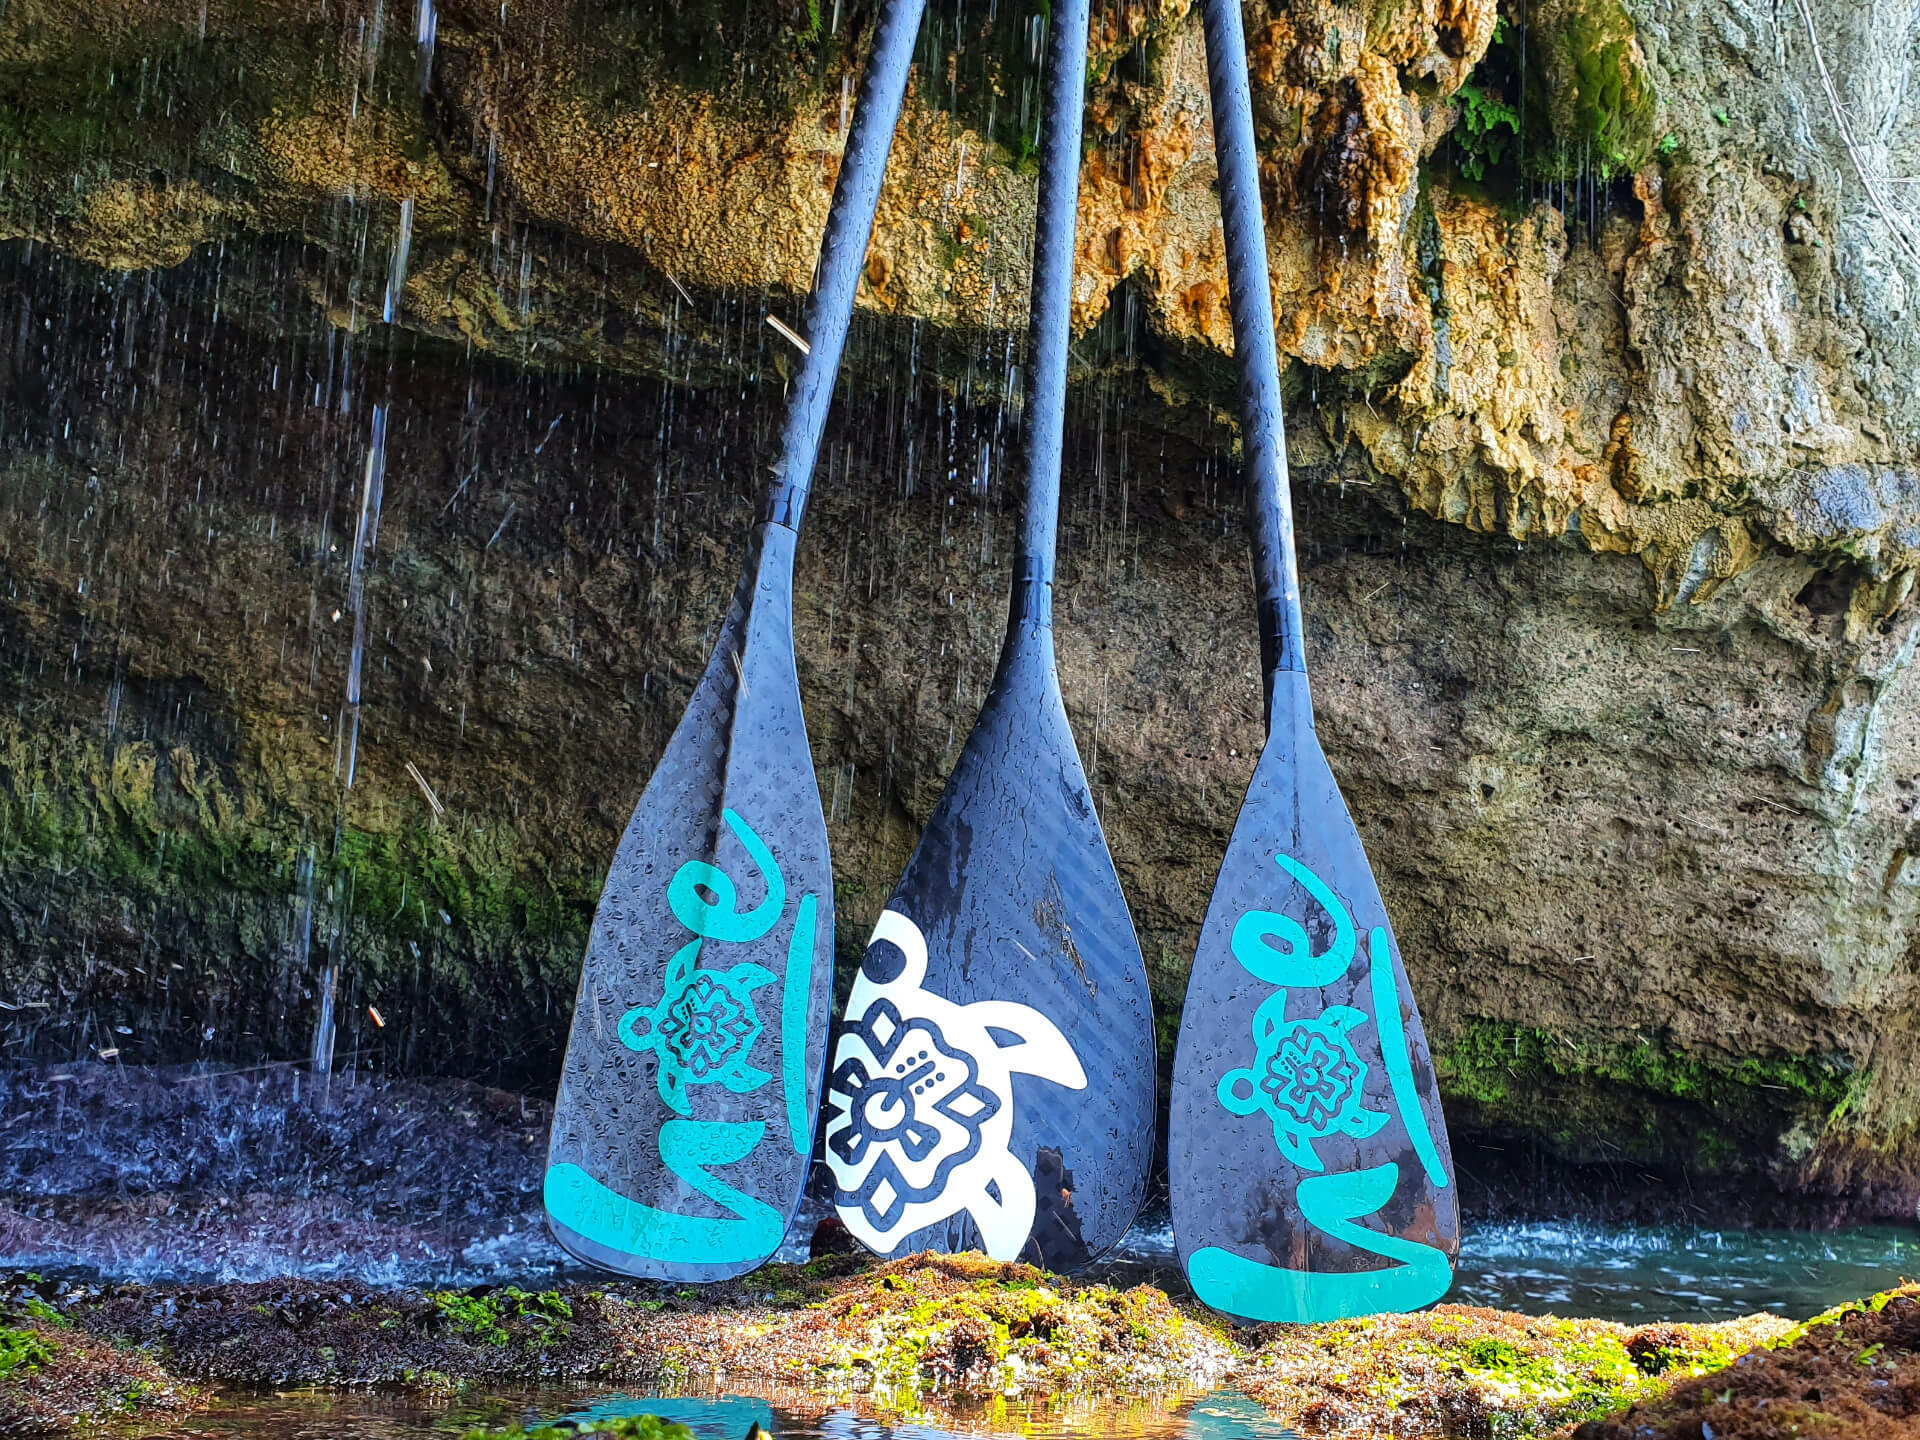 3 hoe custom paddles on a rock under a waterfall